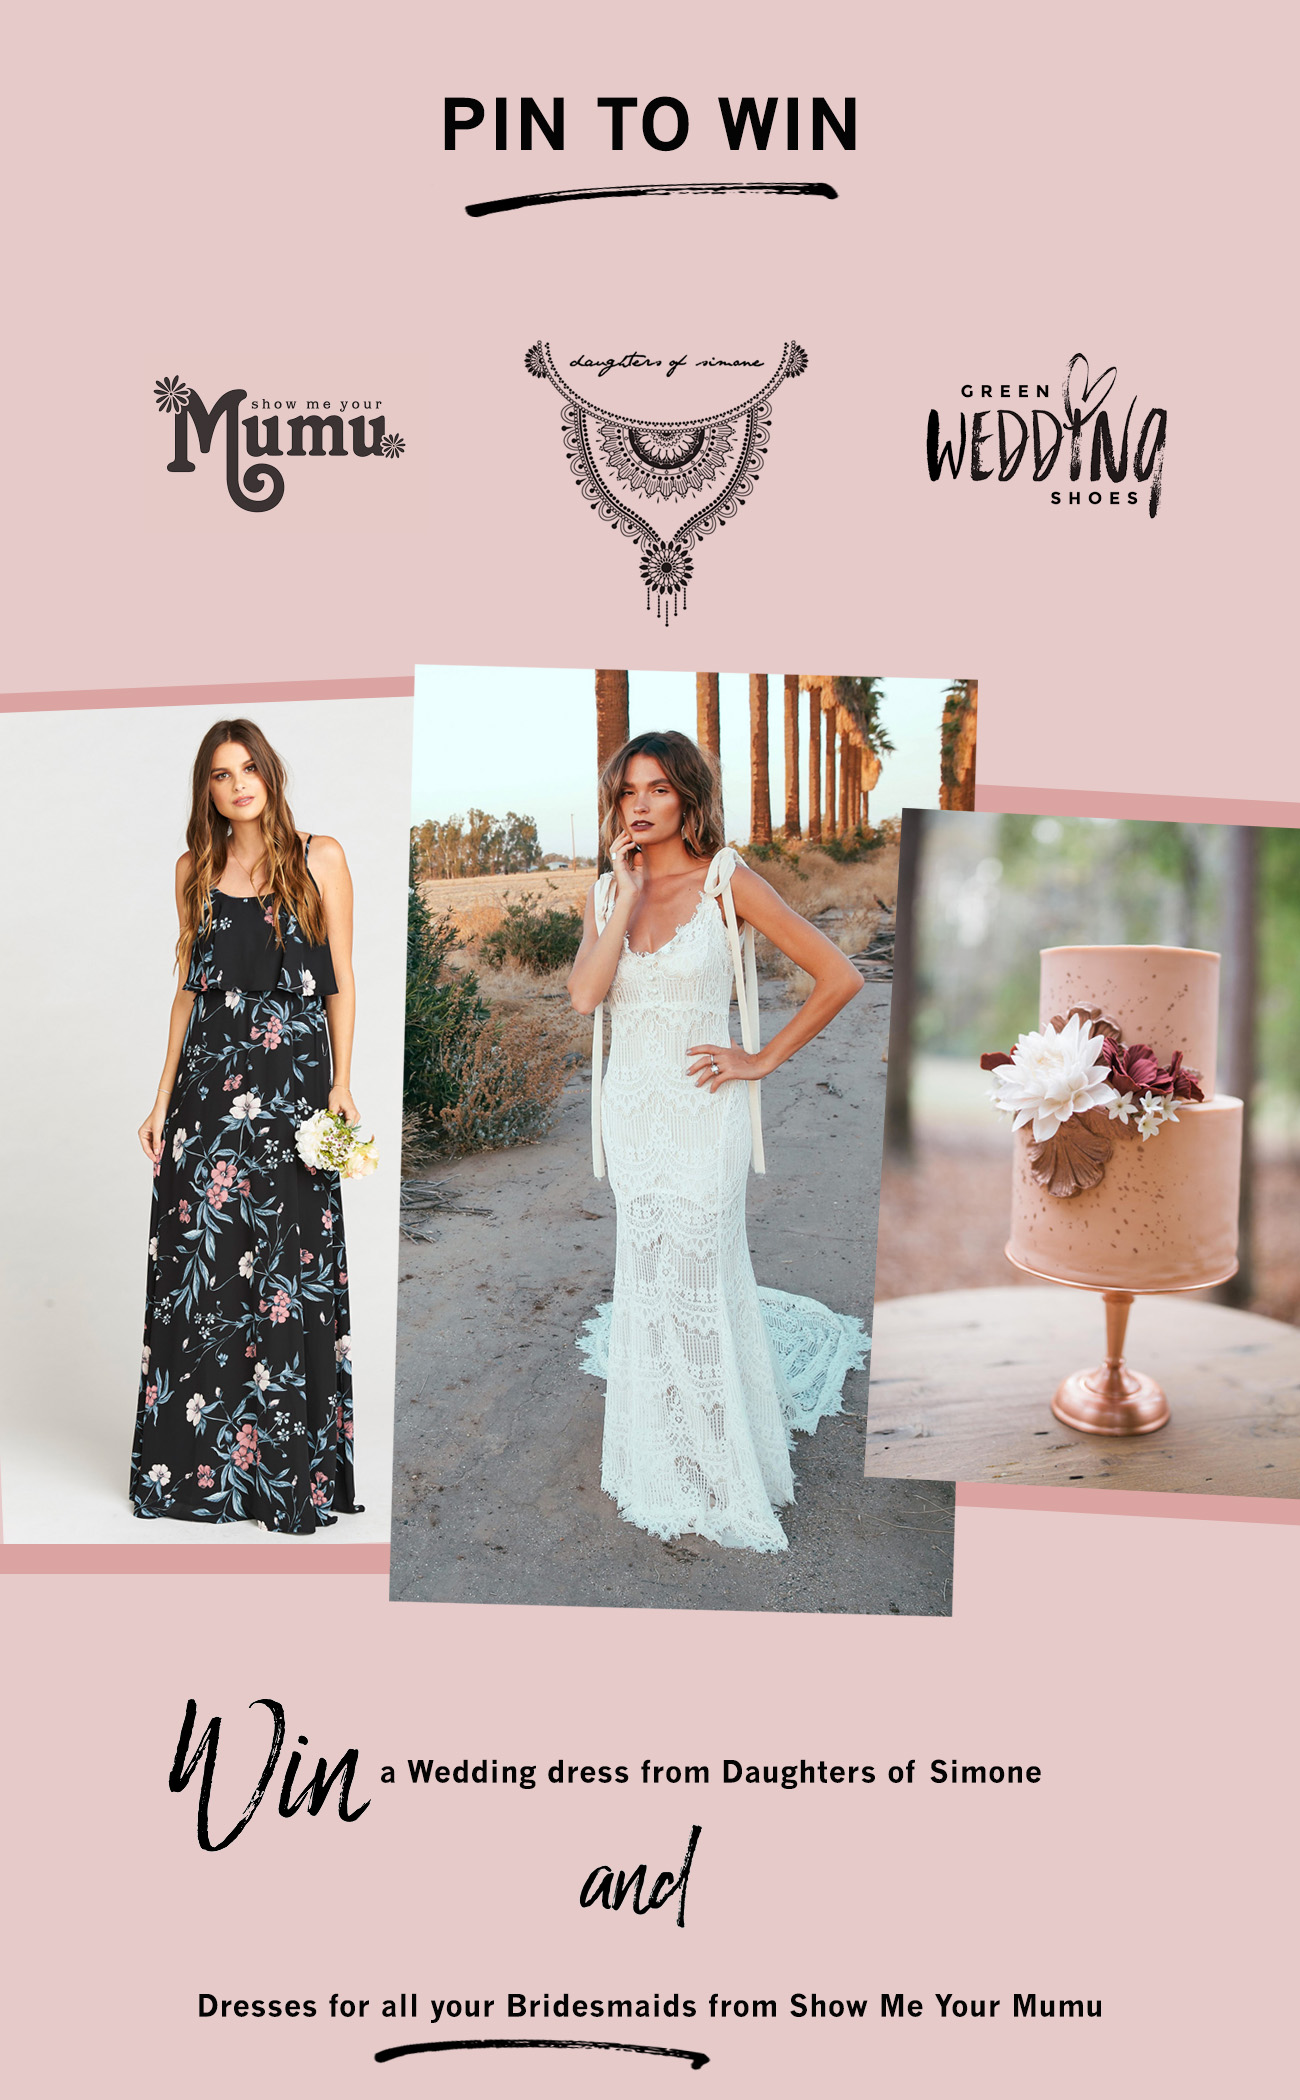 Win a Wedding Dress and Bridesmaids dresses